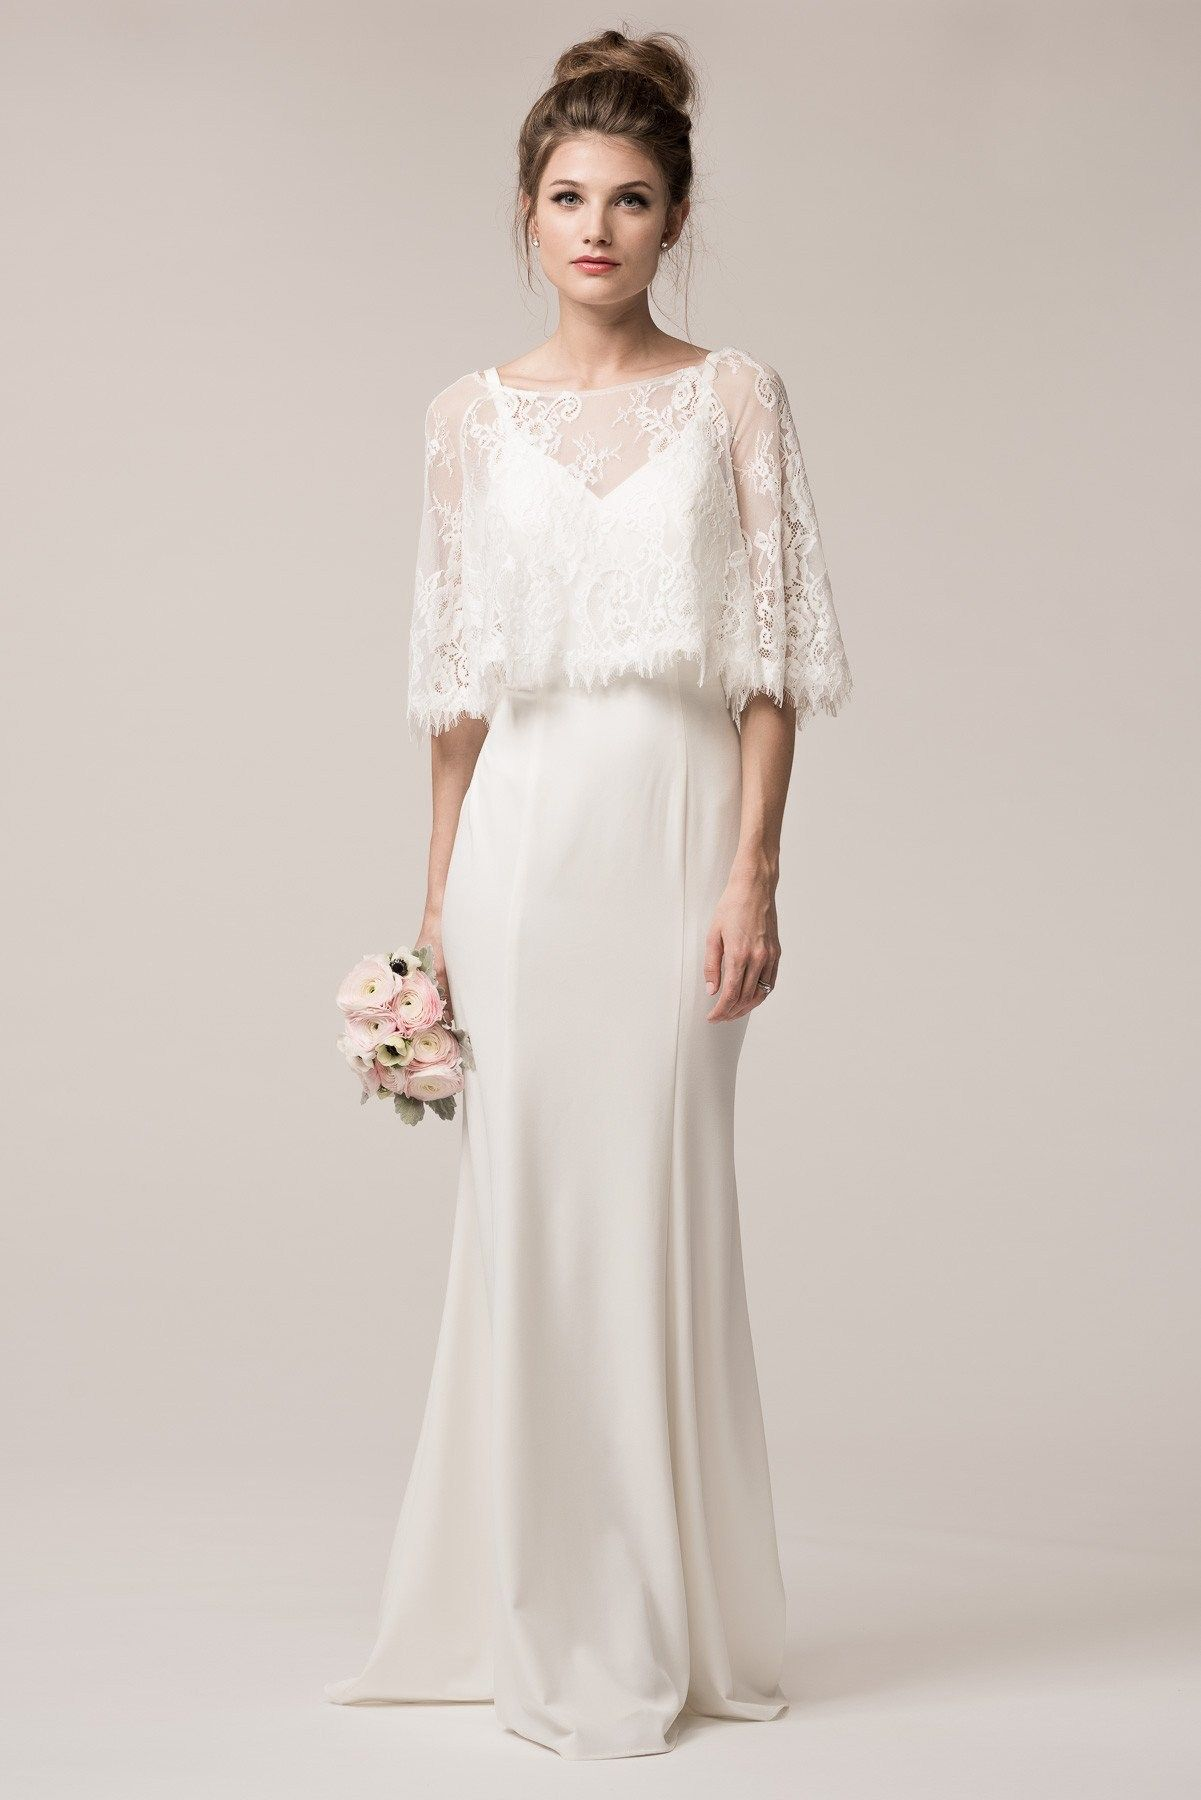 Wedding Dresses Dazzling To Amazing Gown Suggestion Lovely Ways Simple Elegant Wedding Wedding Dresses Minimalist Wedding Dresses Wedding Dress Accessories